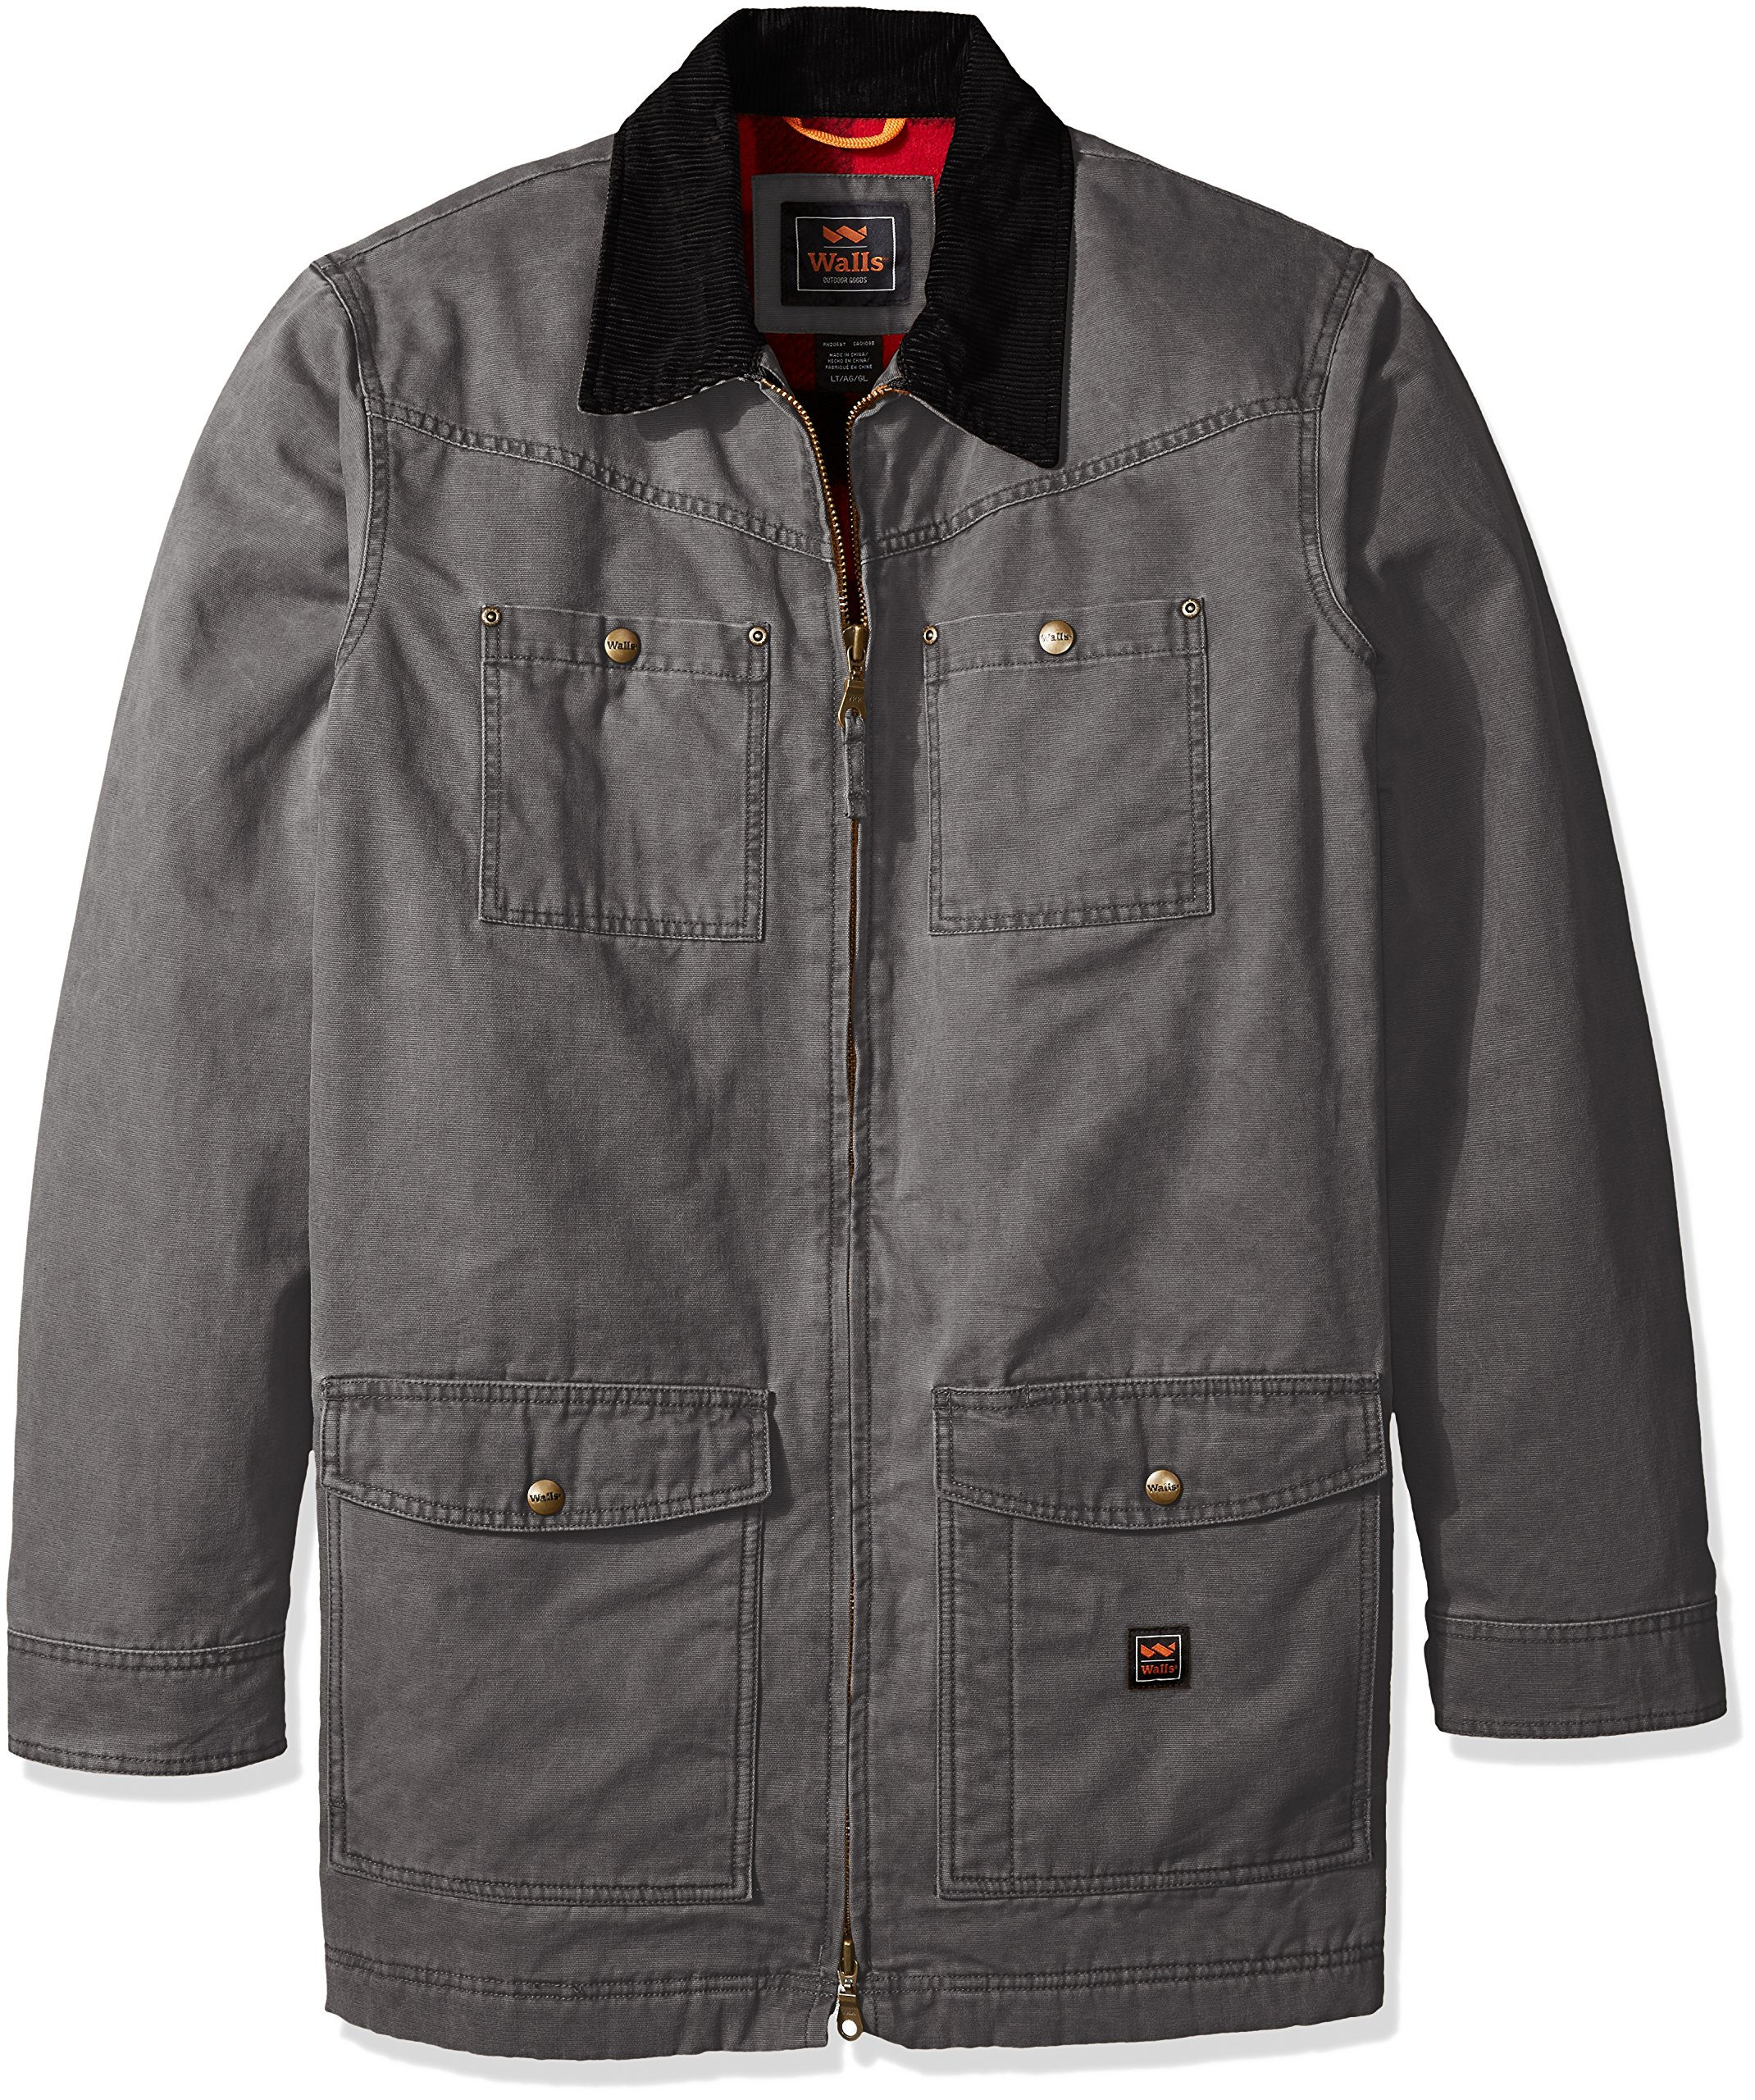 Walls Men's Big Redford Vintage Duck Barn Coat, Washed Graphite, 2X Tall